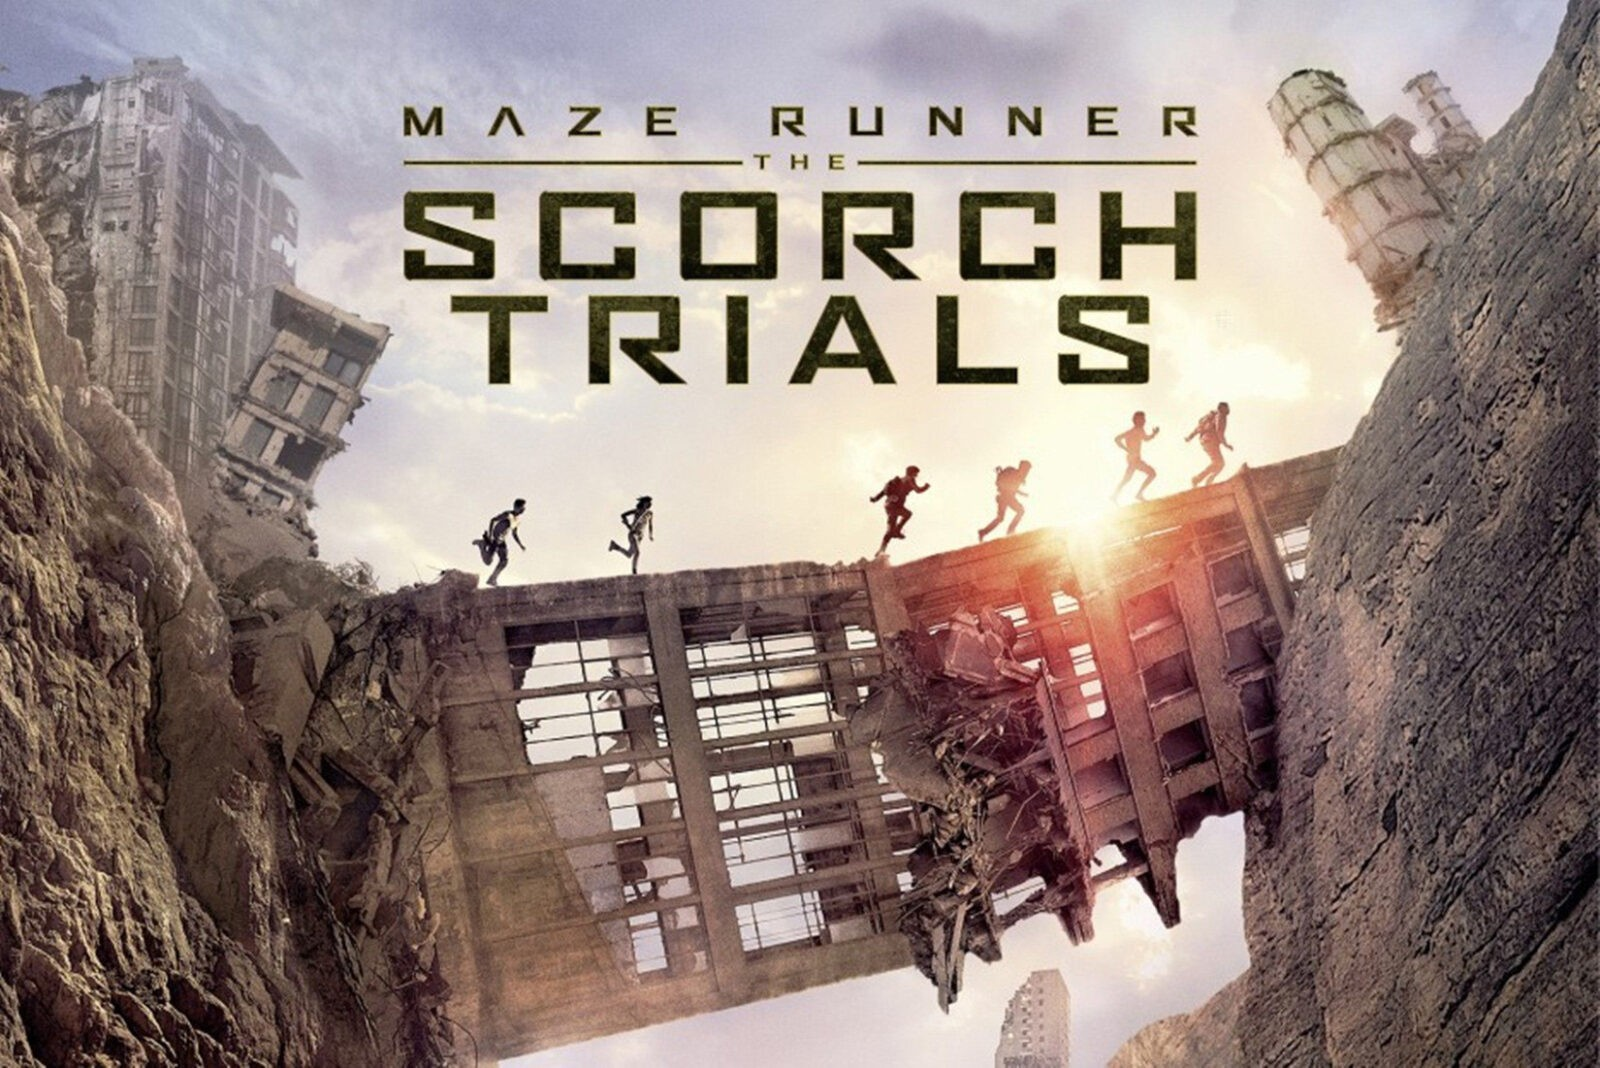 15+ Maze Runner The Scorch Trials wallpapers High Definition